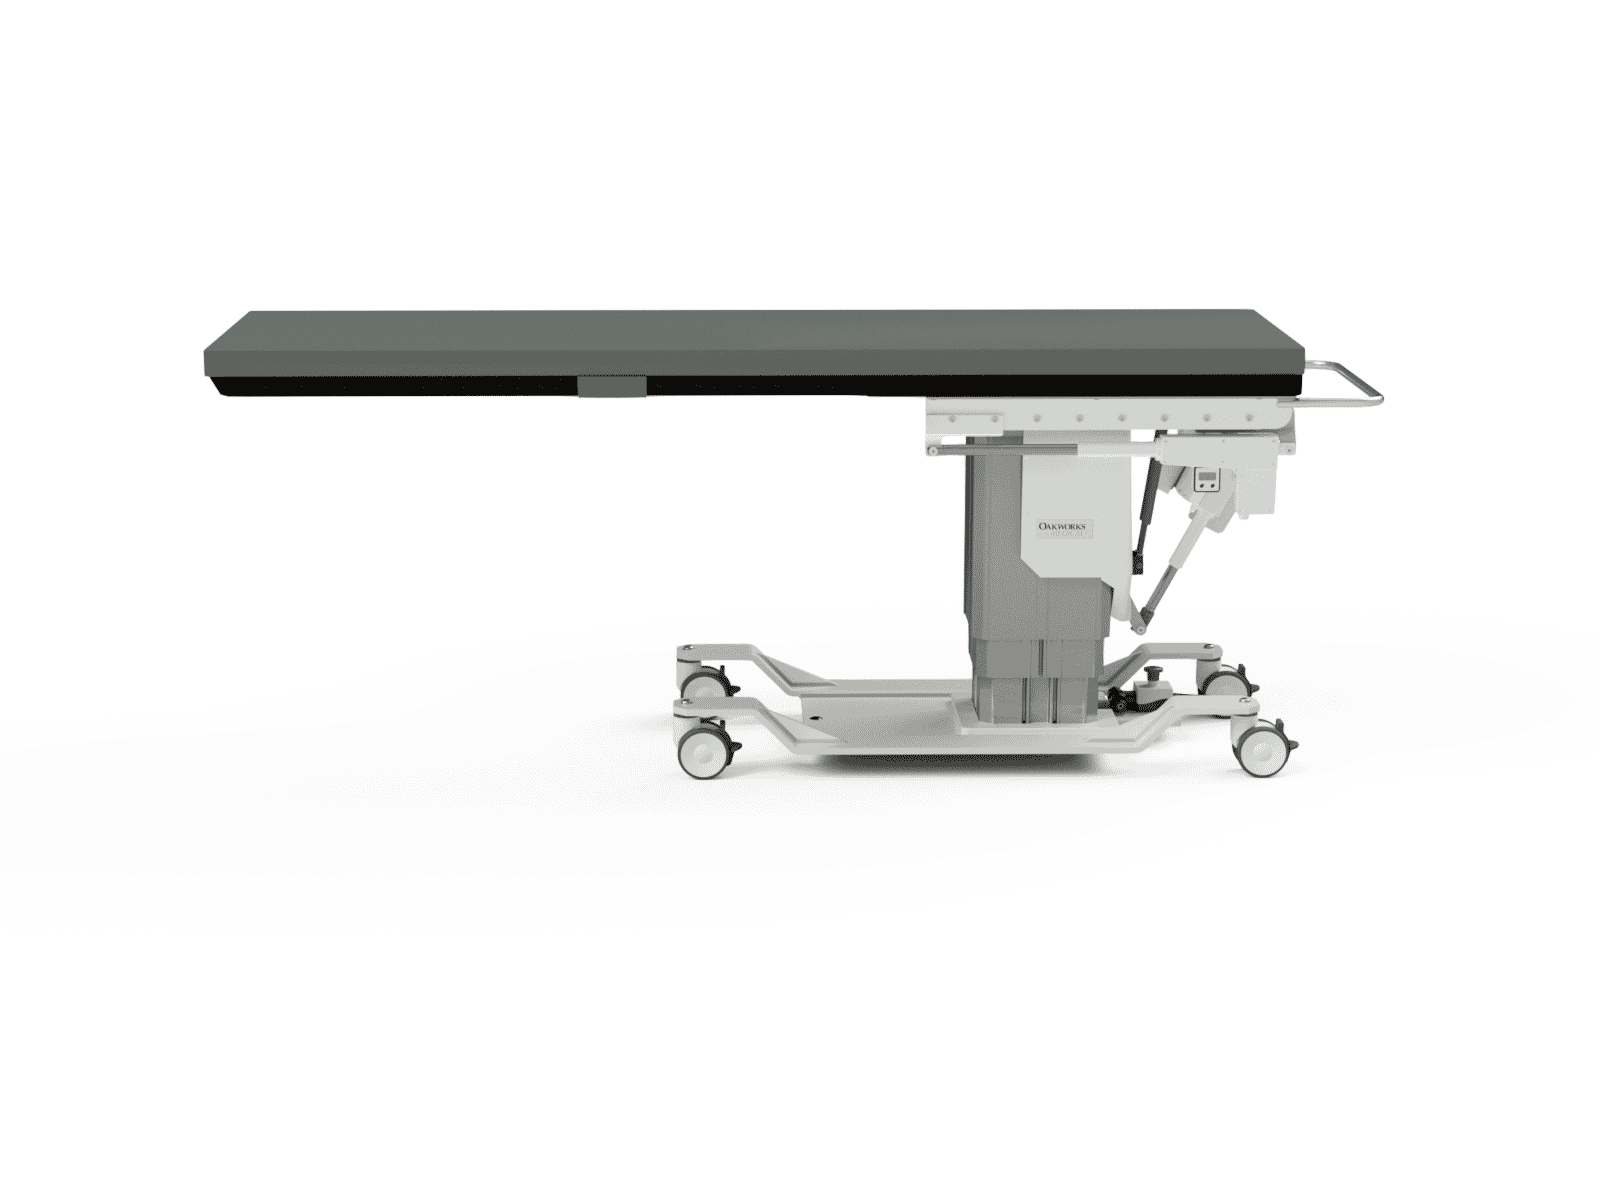 CFPM301-Rectangular-Top Imaging-Pain Management Table